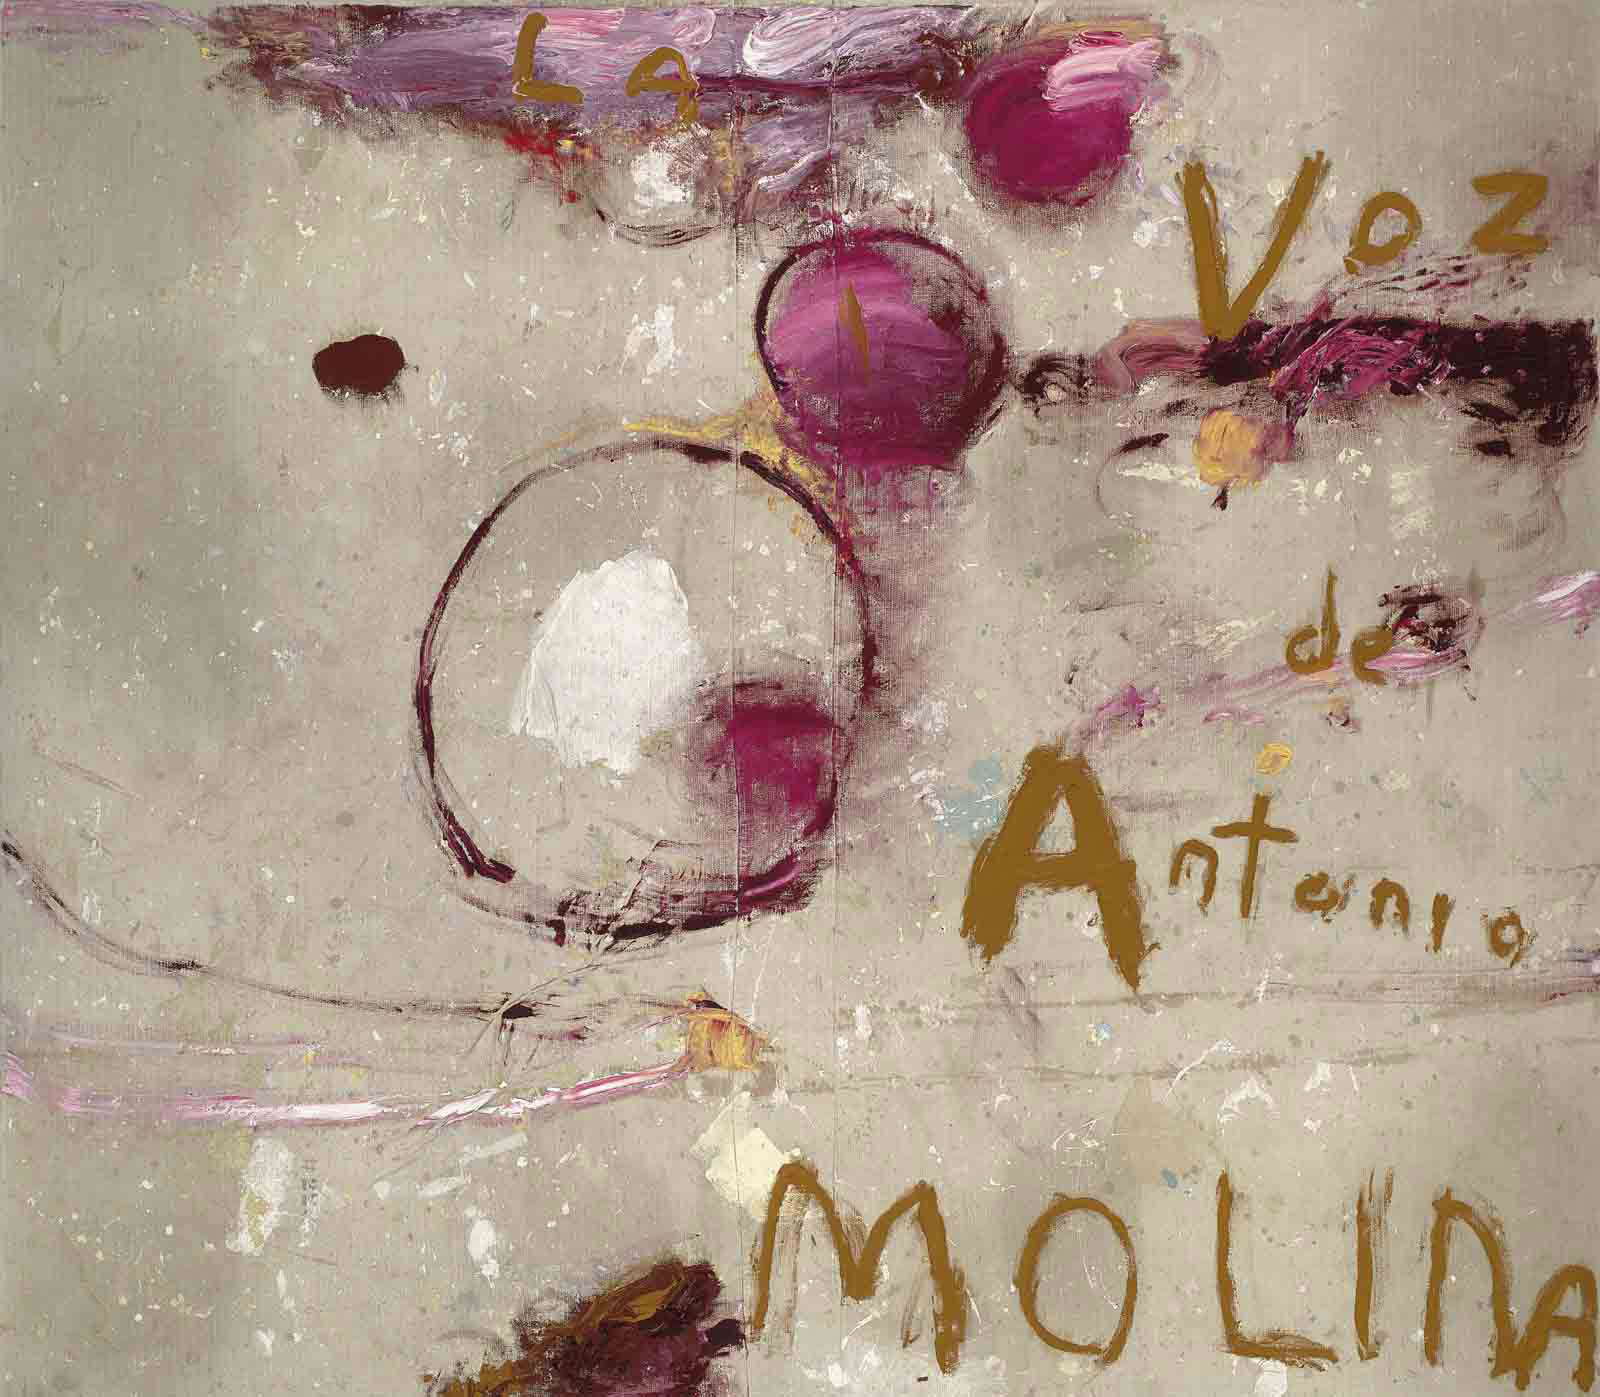 Lo Voz de Antonio Molina (The Voice of Antonio Molina)